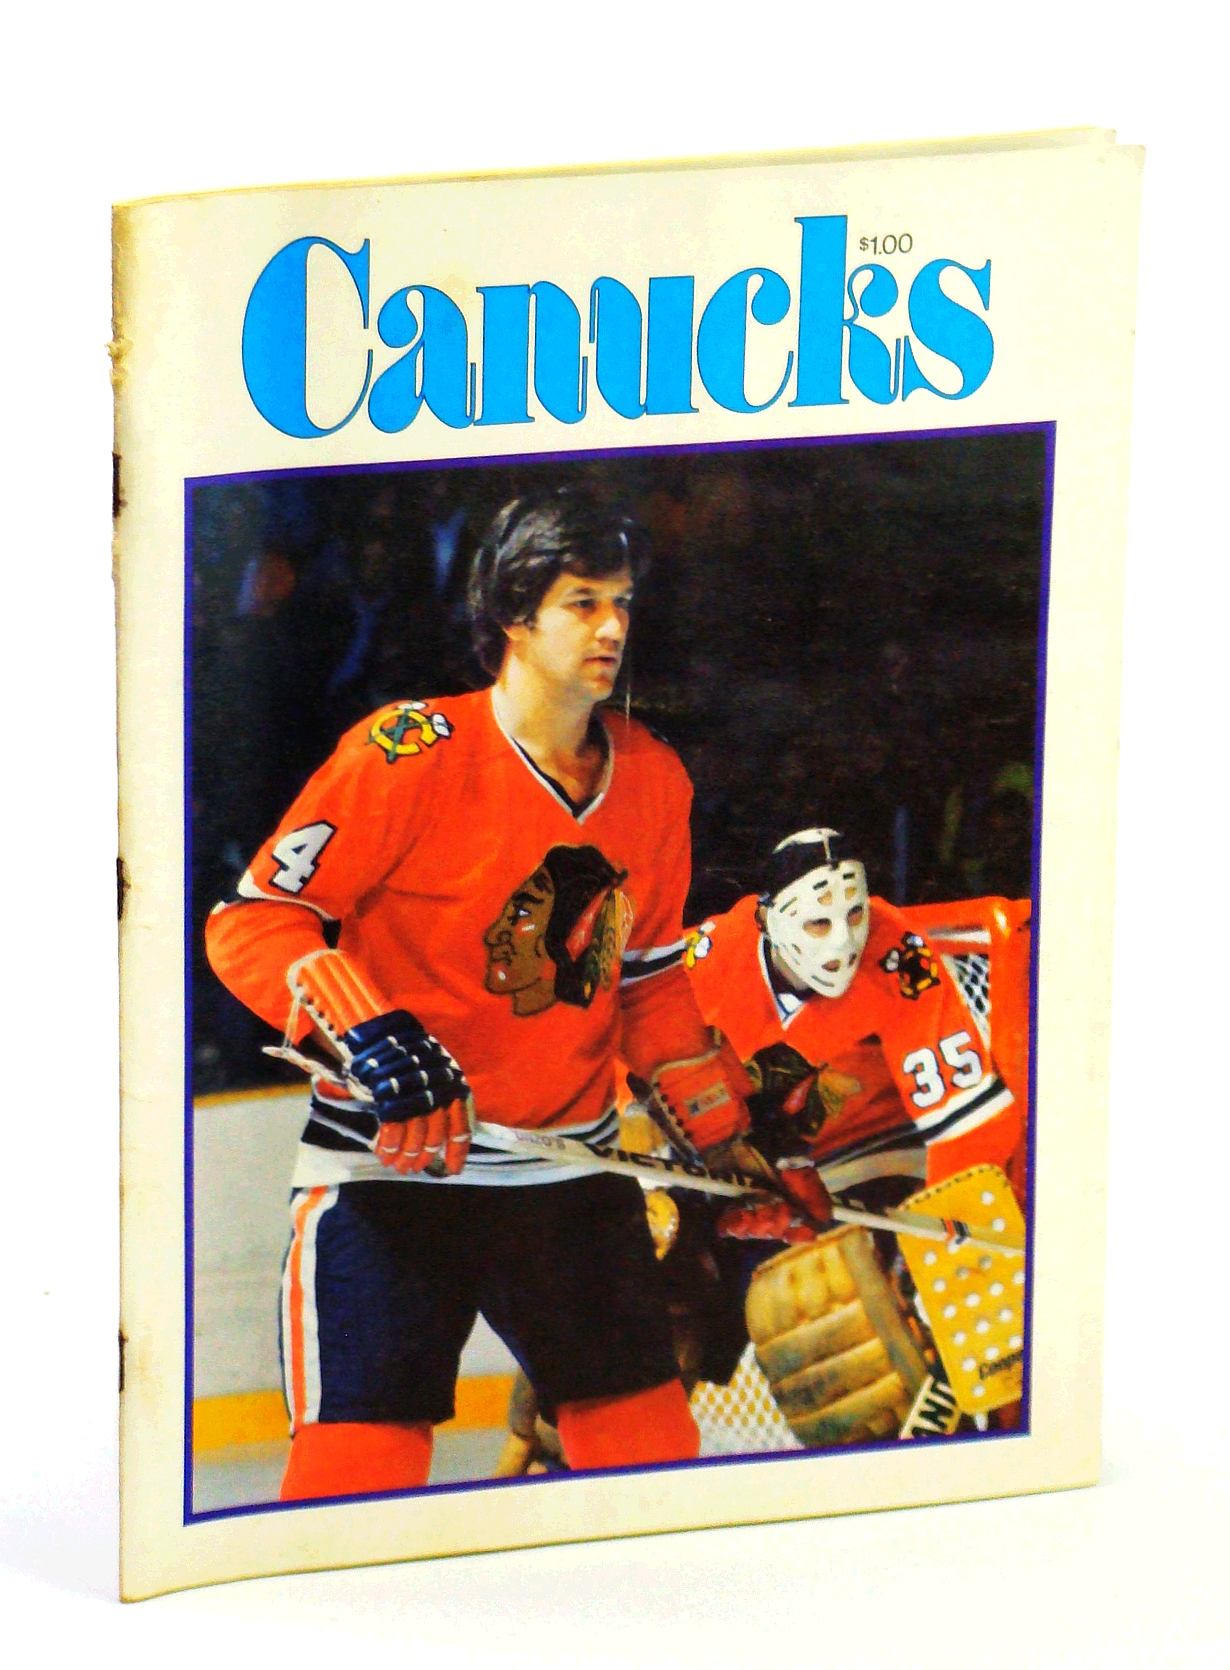 Image for Canucks - Vancouver Canuck Magazine, January 27, 1977, Vol. 7, No. 25 - Cover Photo of Bobby Orr and Tony Esposito of the Chicago Blackhawks